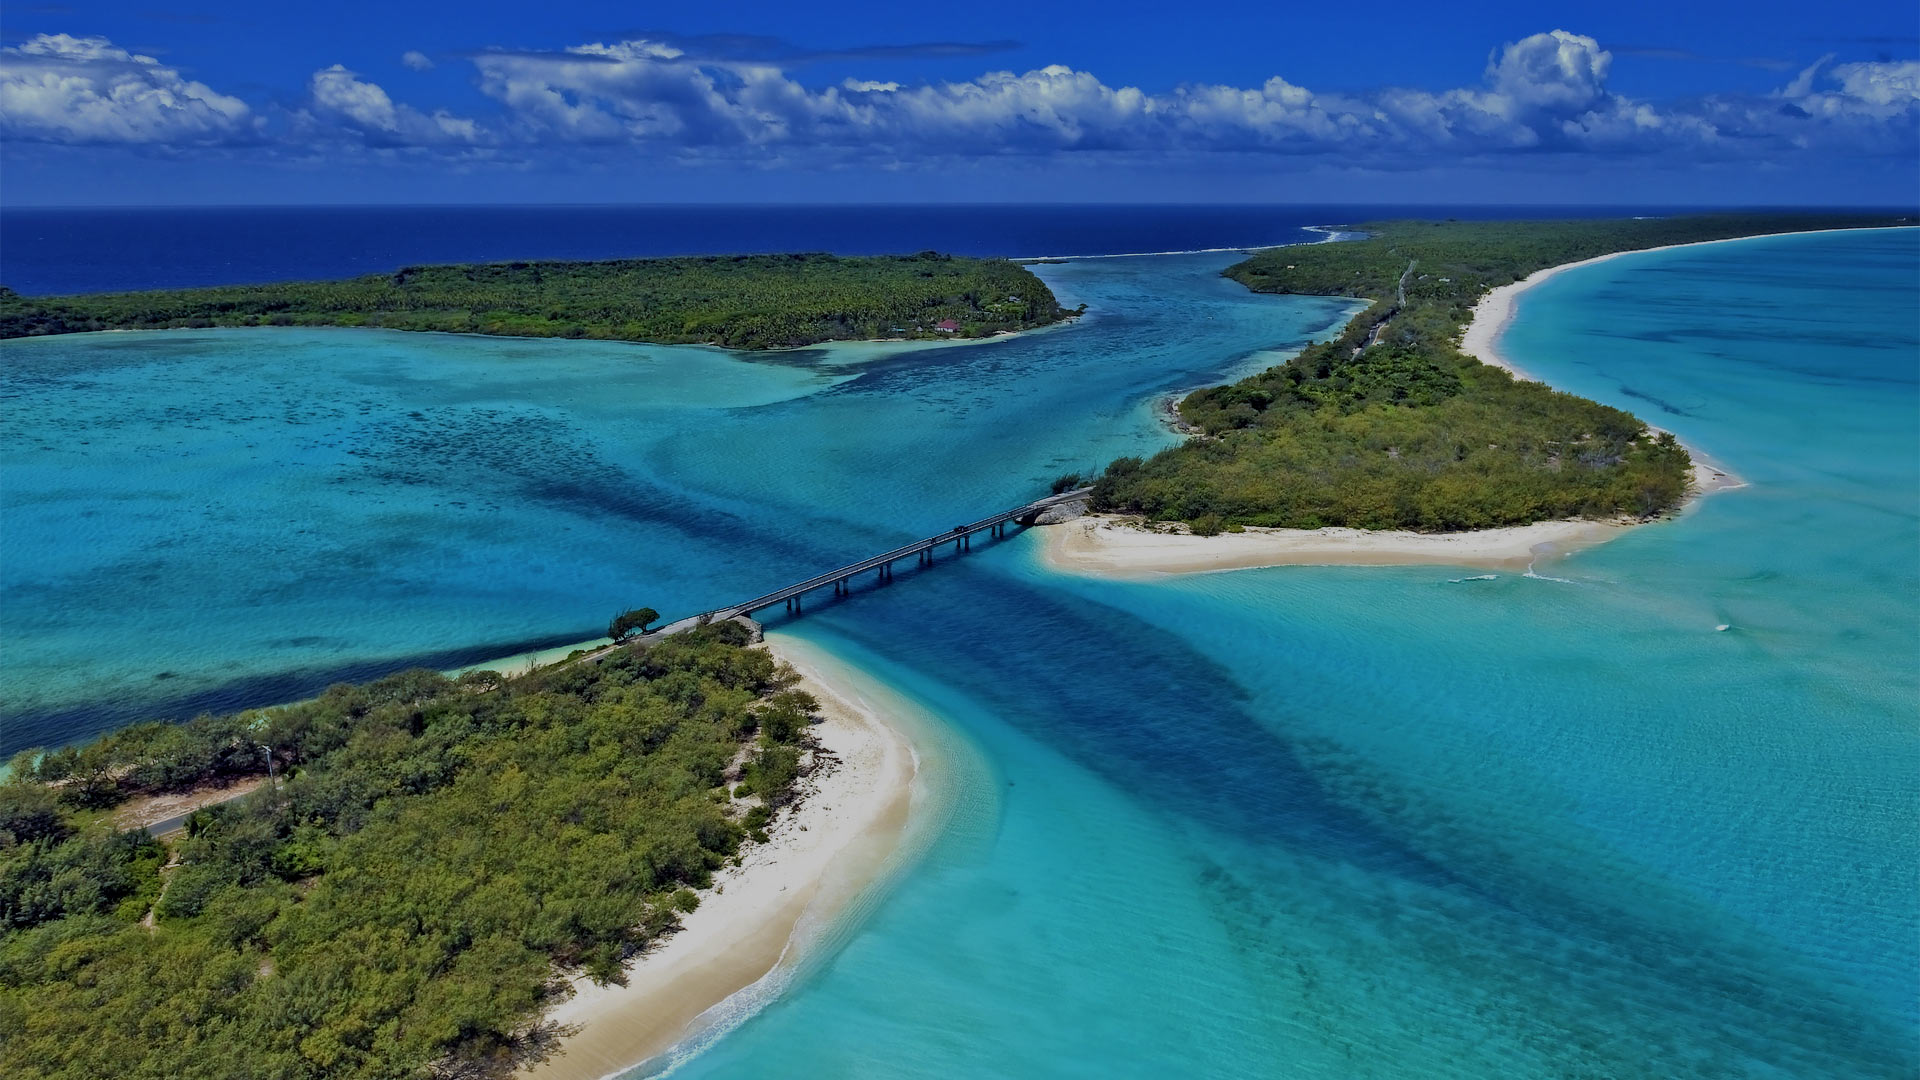 New Caledonia: The South Pacific's Biggest Secret